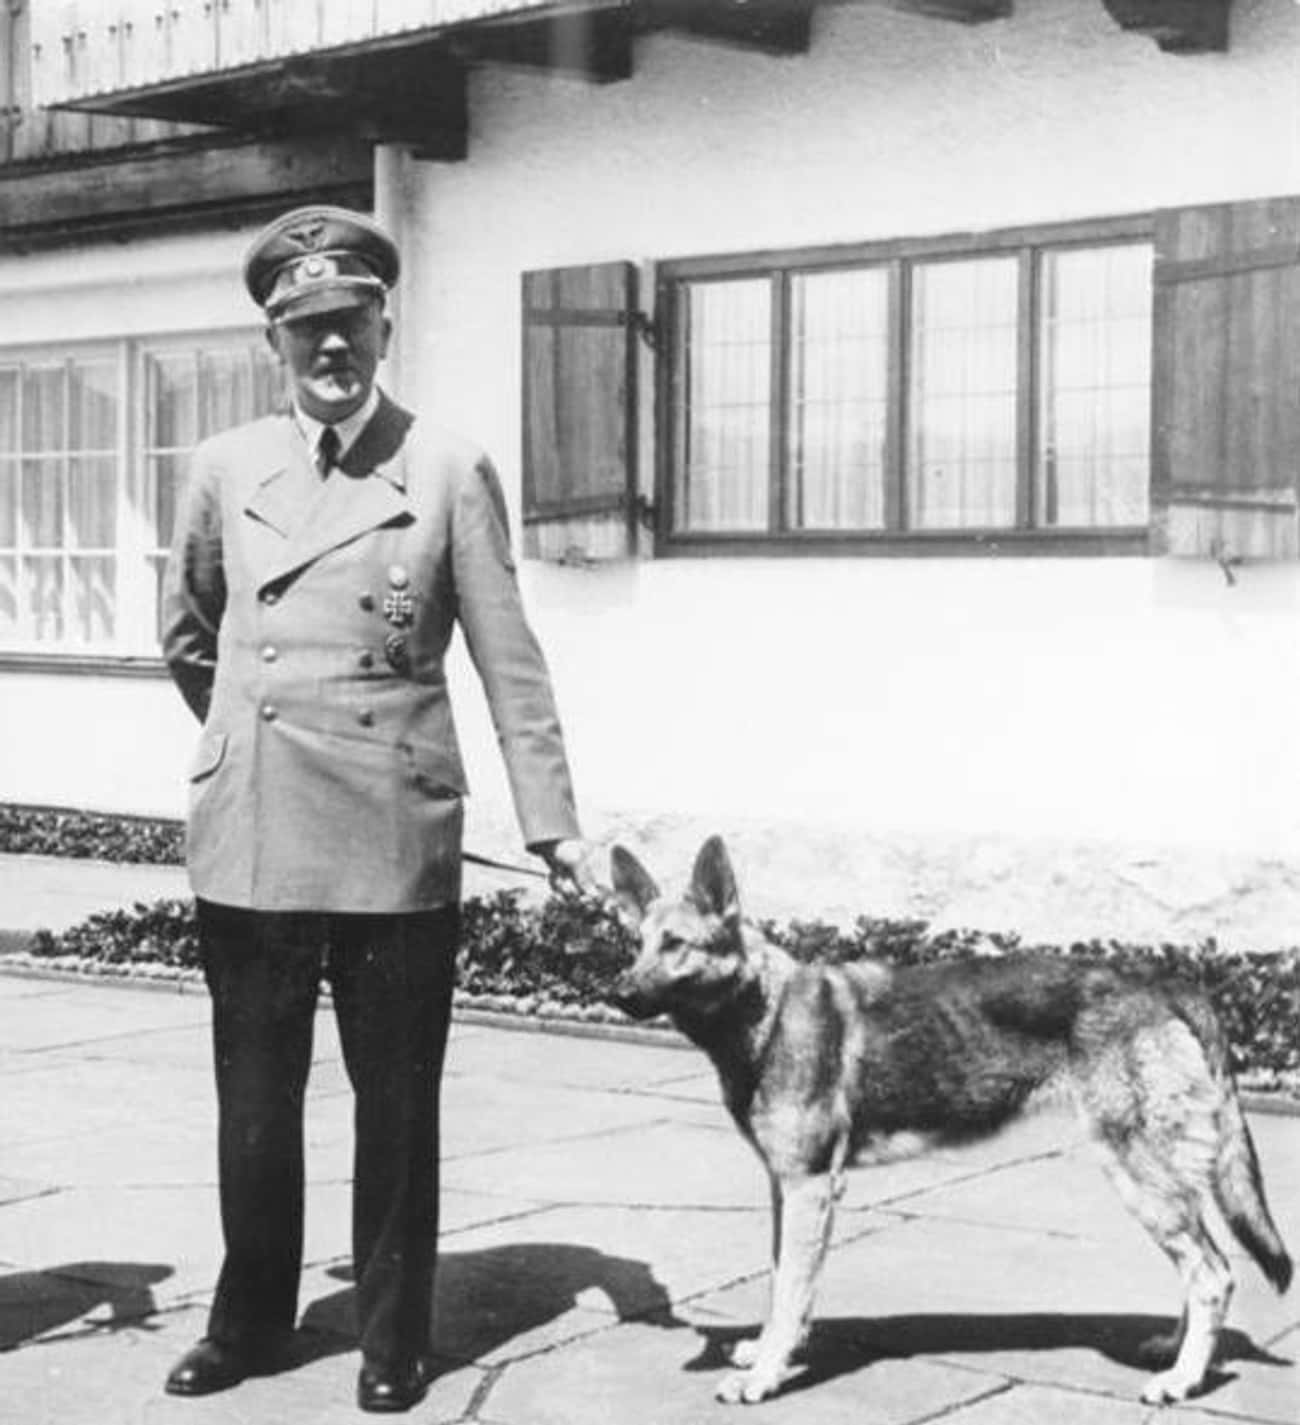 Adolf Hitler's German Shepherd, Blondi